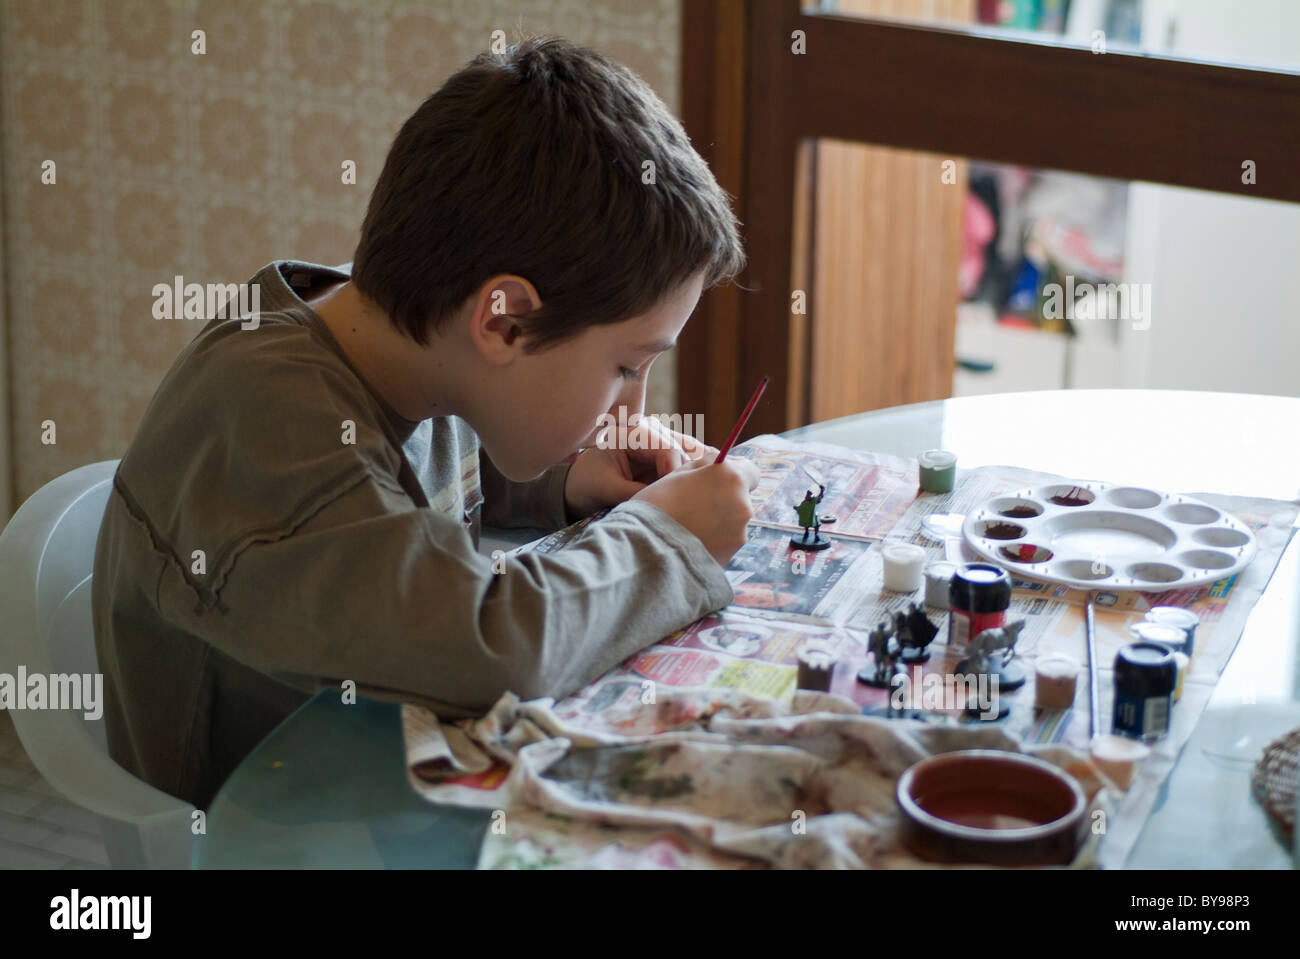 France Ten Years Old Boy Painting His Figurine In The Kitchen - Stock Image